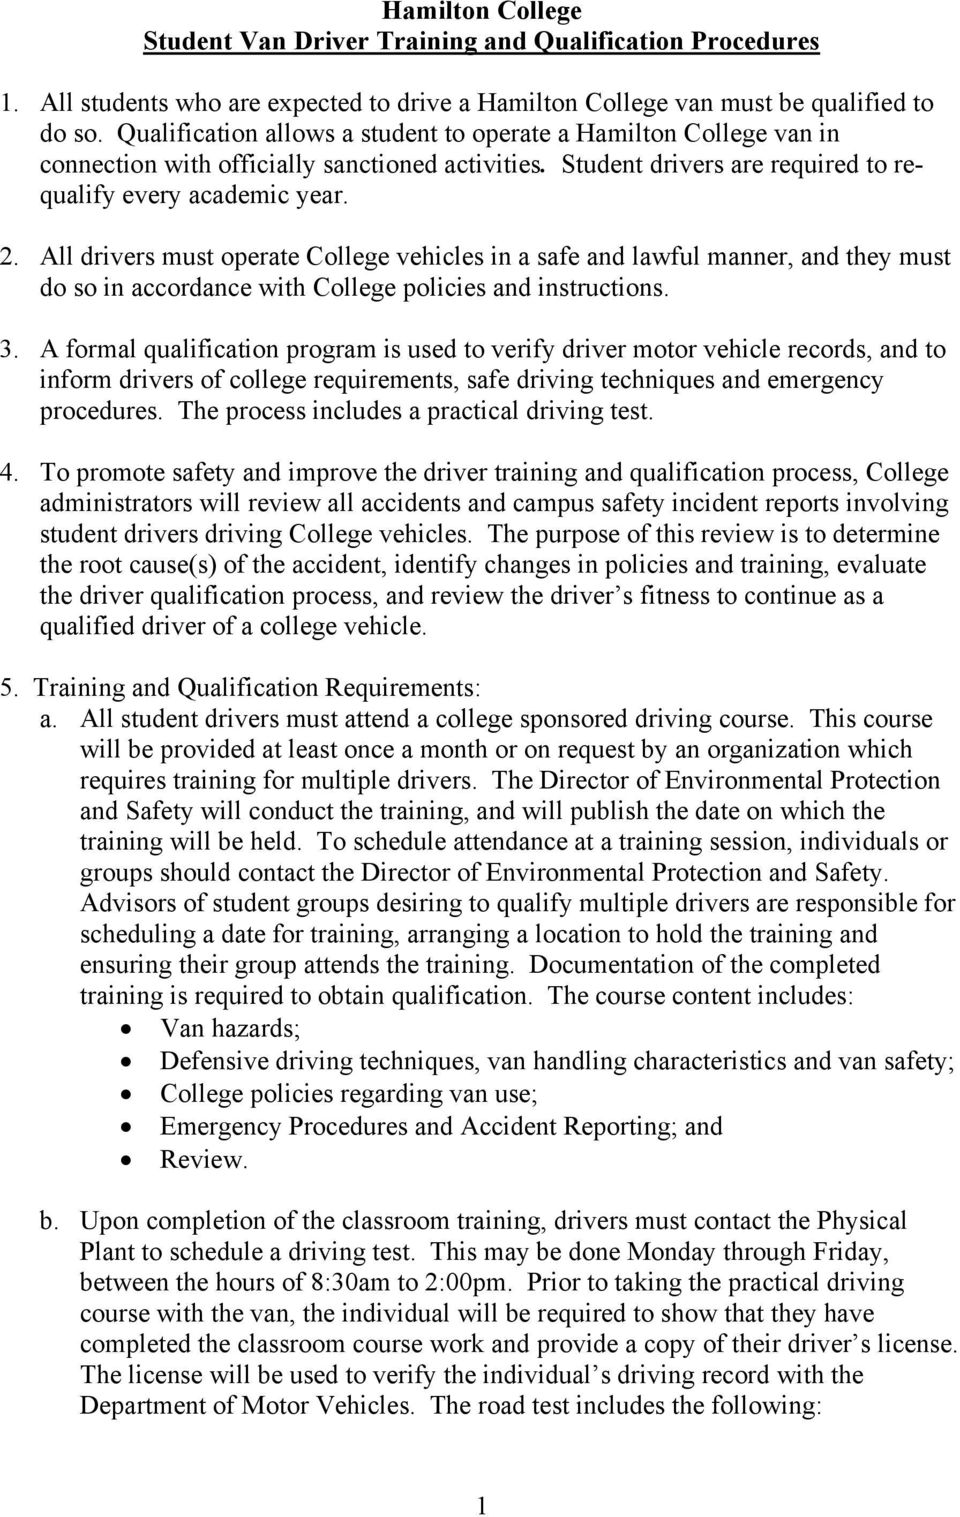 All drivers must operate College vehicles in a safe and lawful manner, and they must do so in accordance with College policies and instructions. 3.